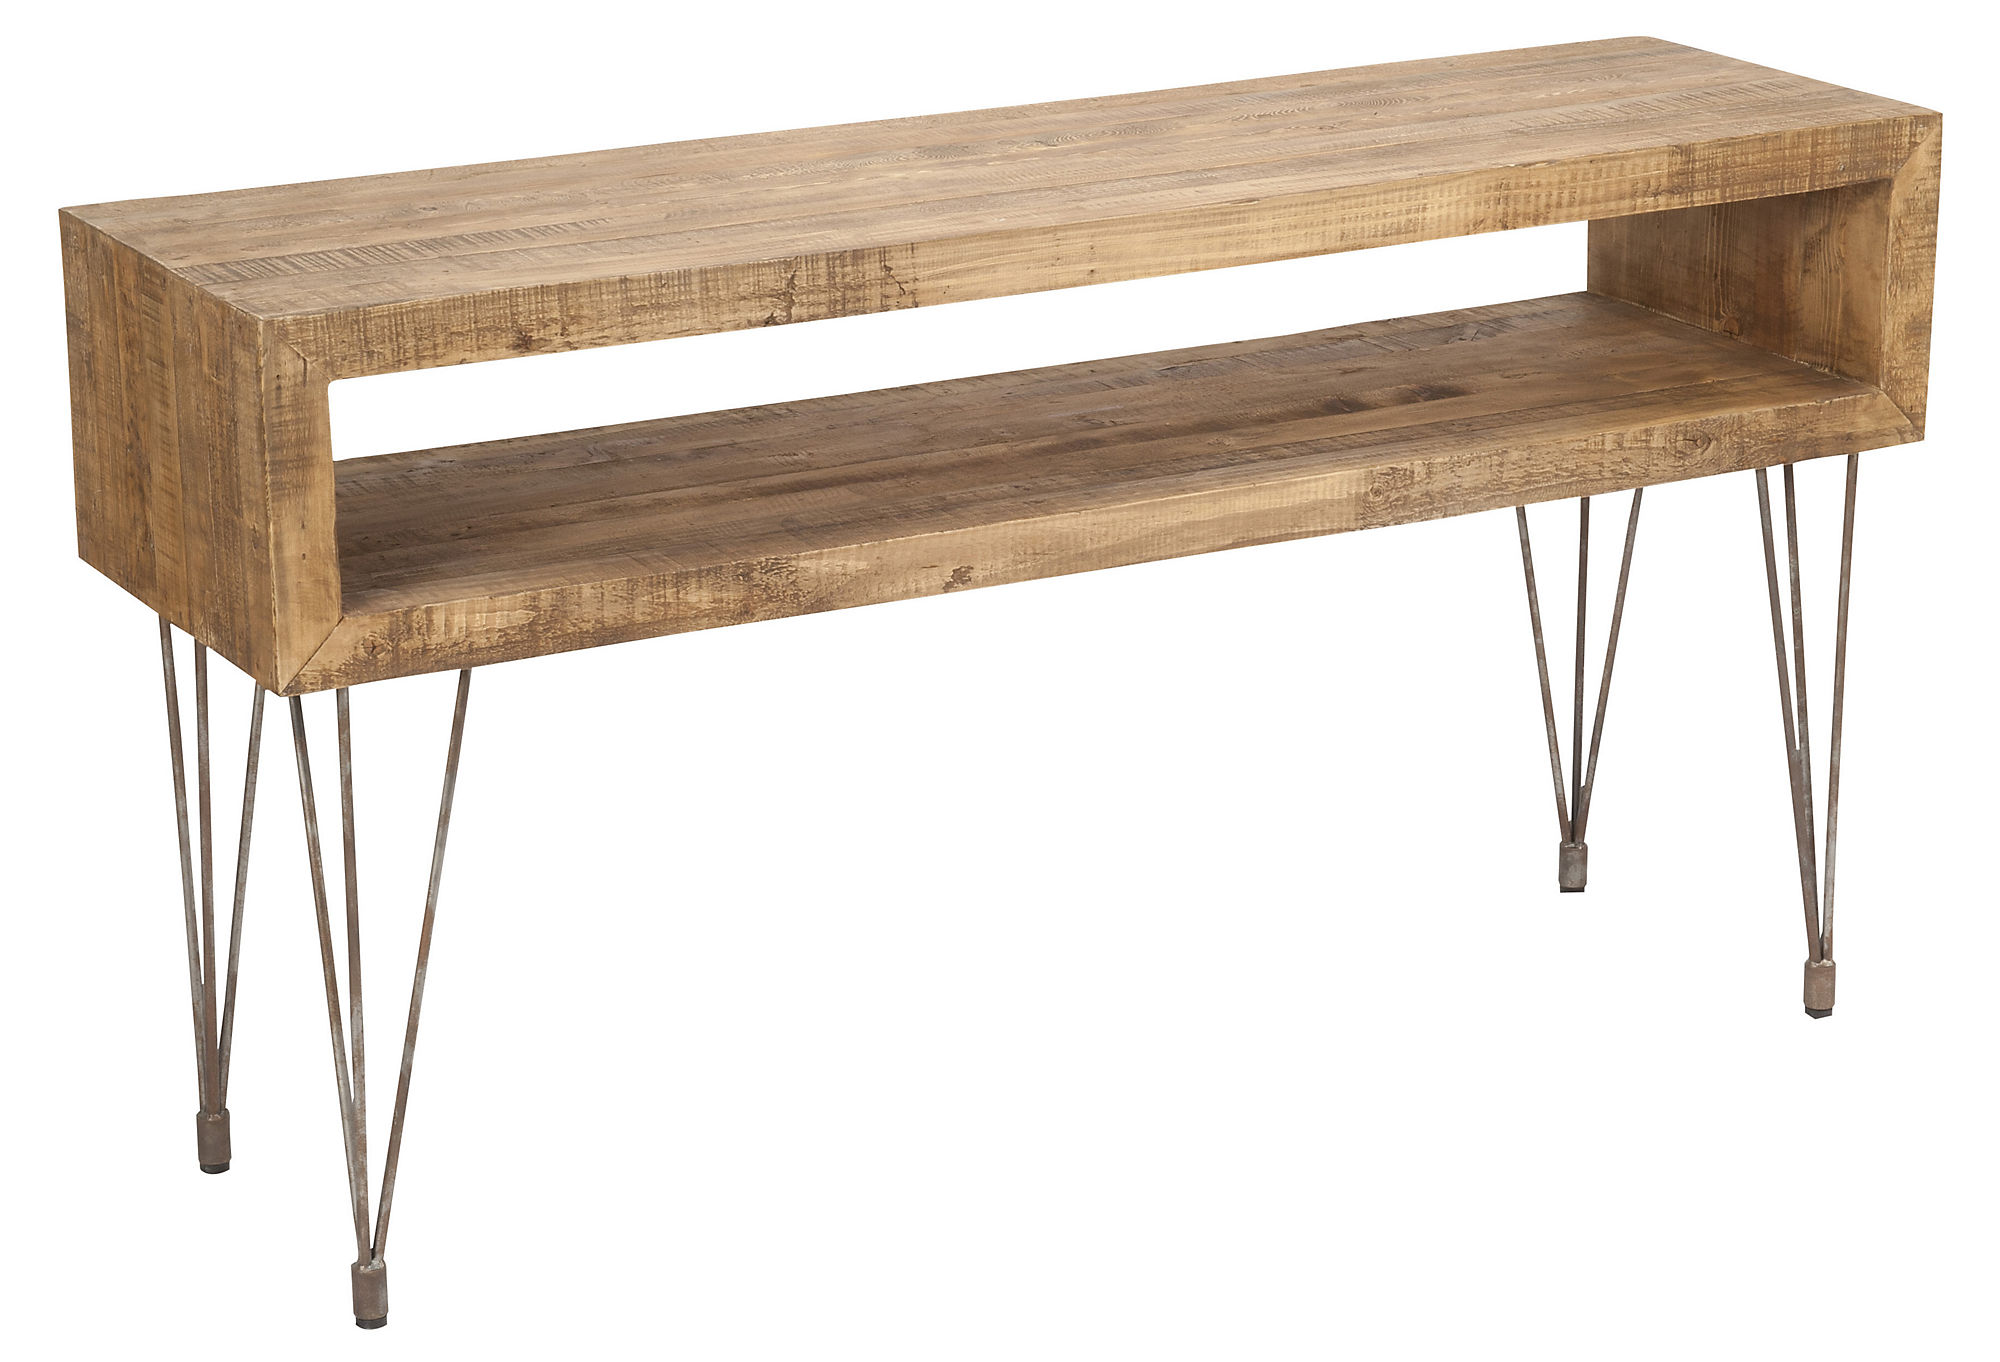 Ballard designs durham console table by ballard designs havenly carole 2 level console table geotapseo Images